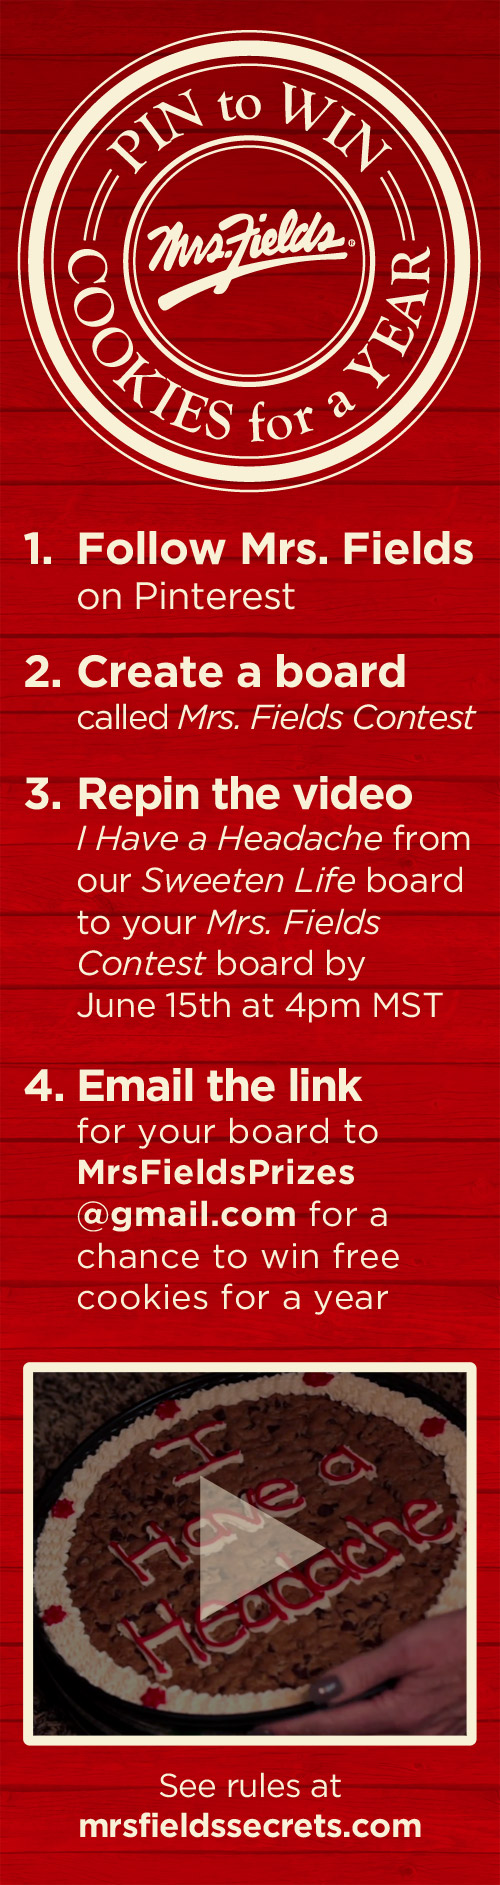 Pin to Win Contest Rules